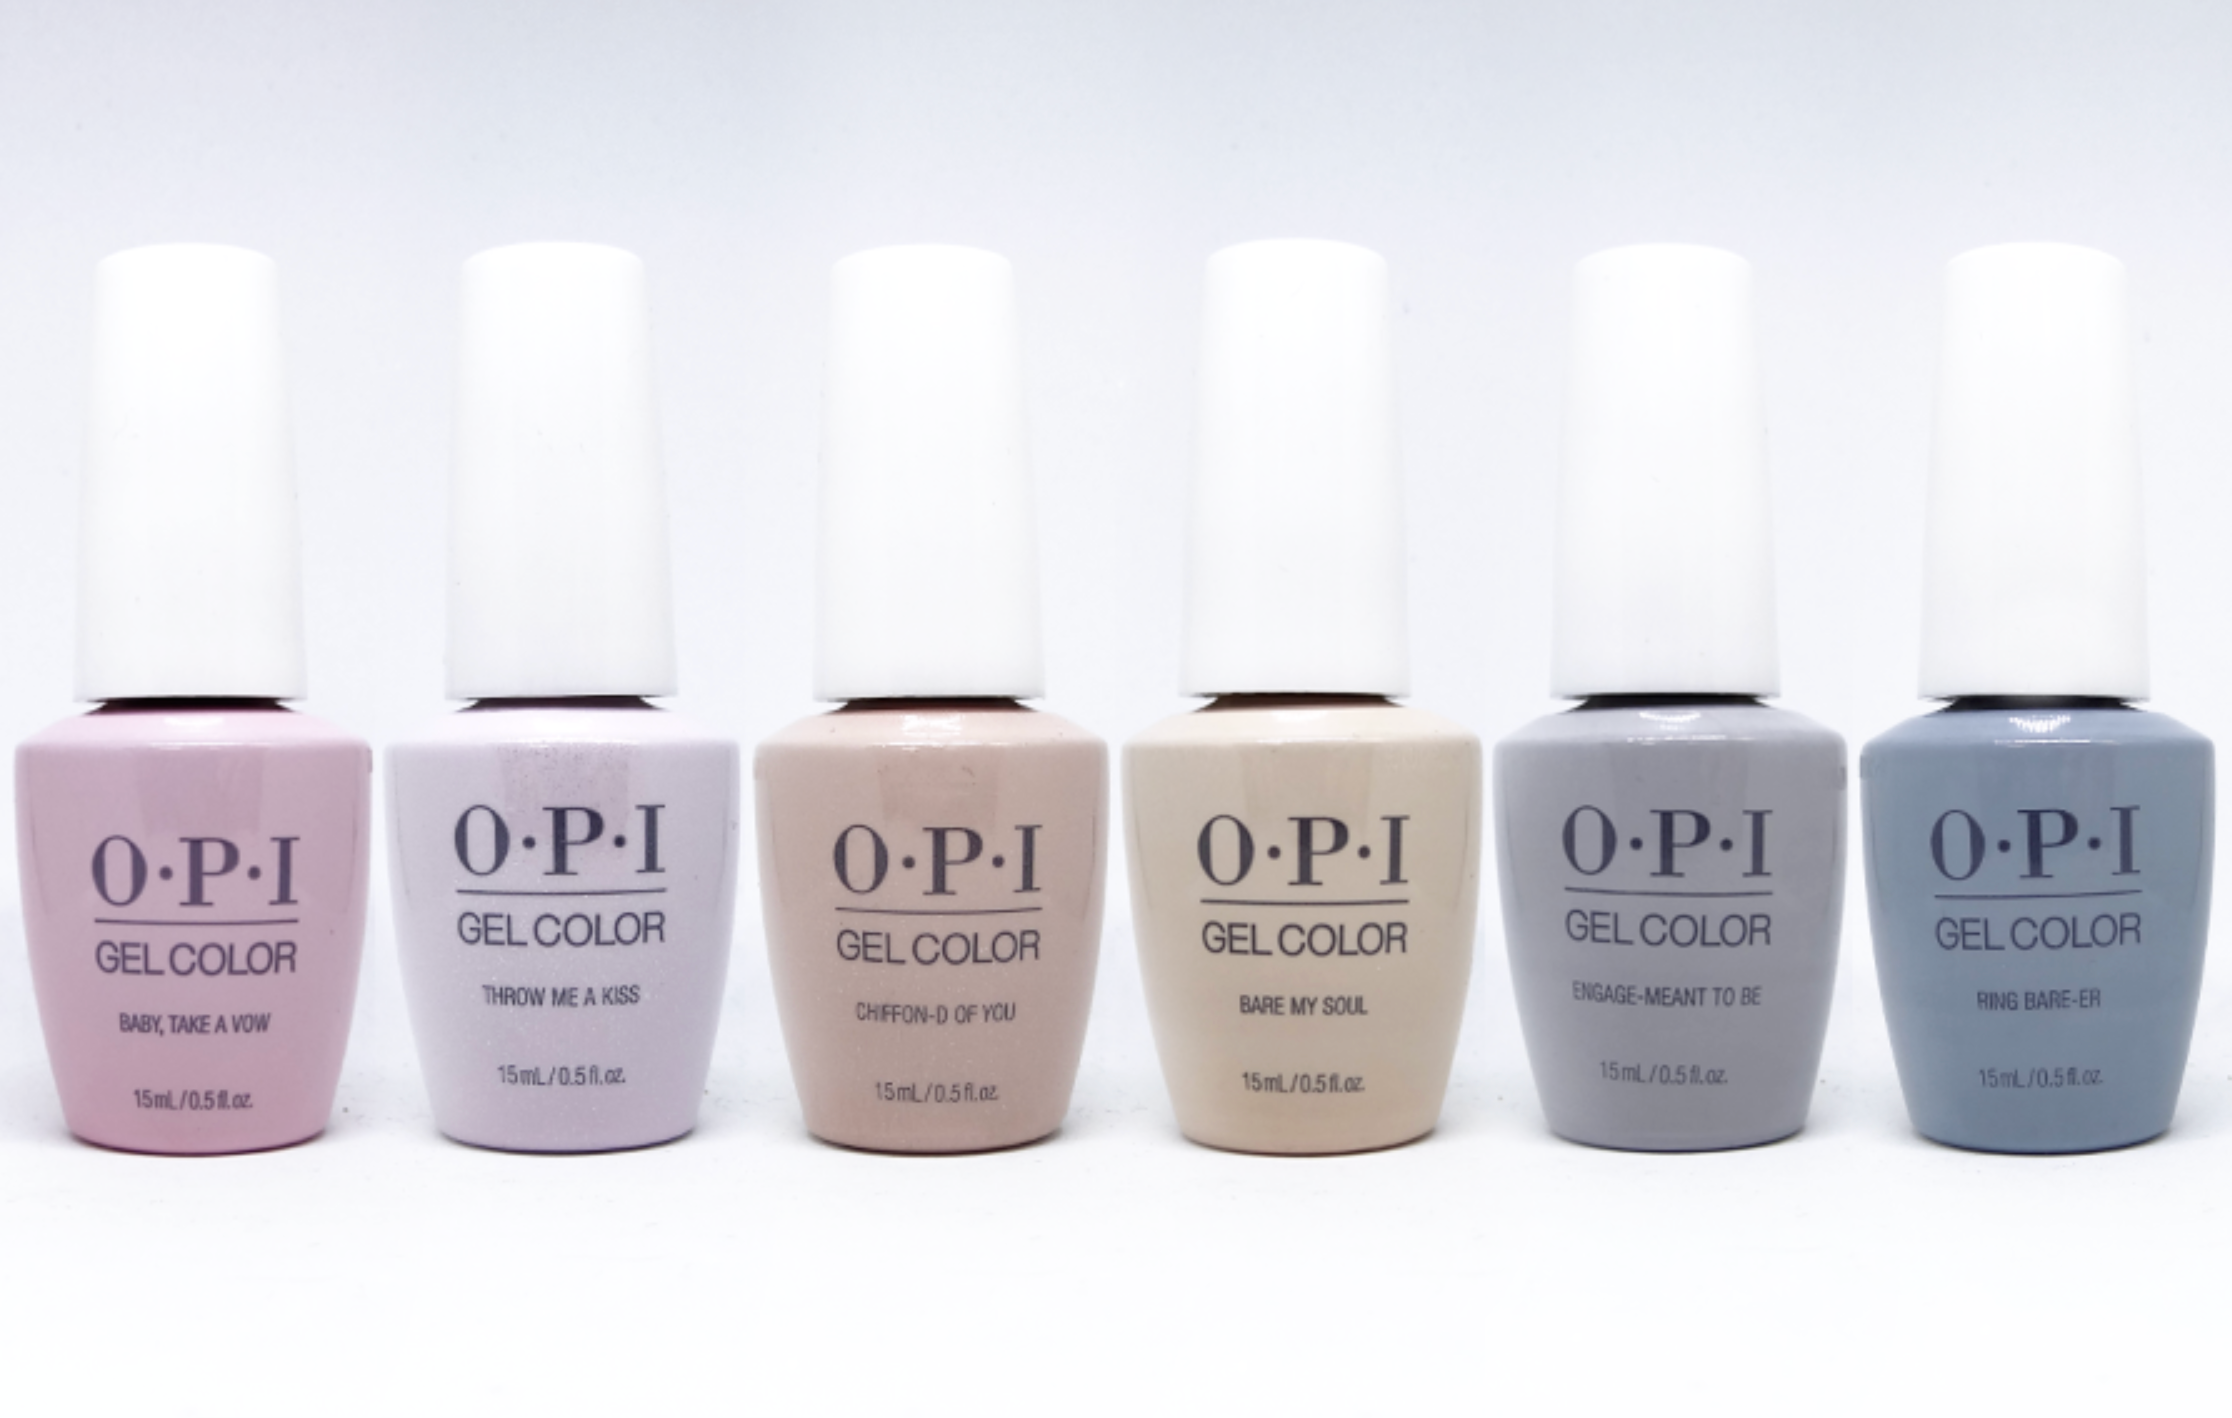 OPI Gel color - Spring 2019 - Always Bare for You Collection - 6 Colors